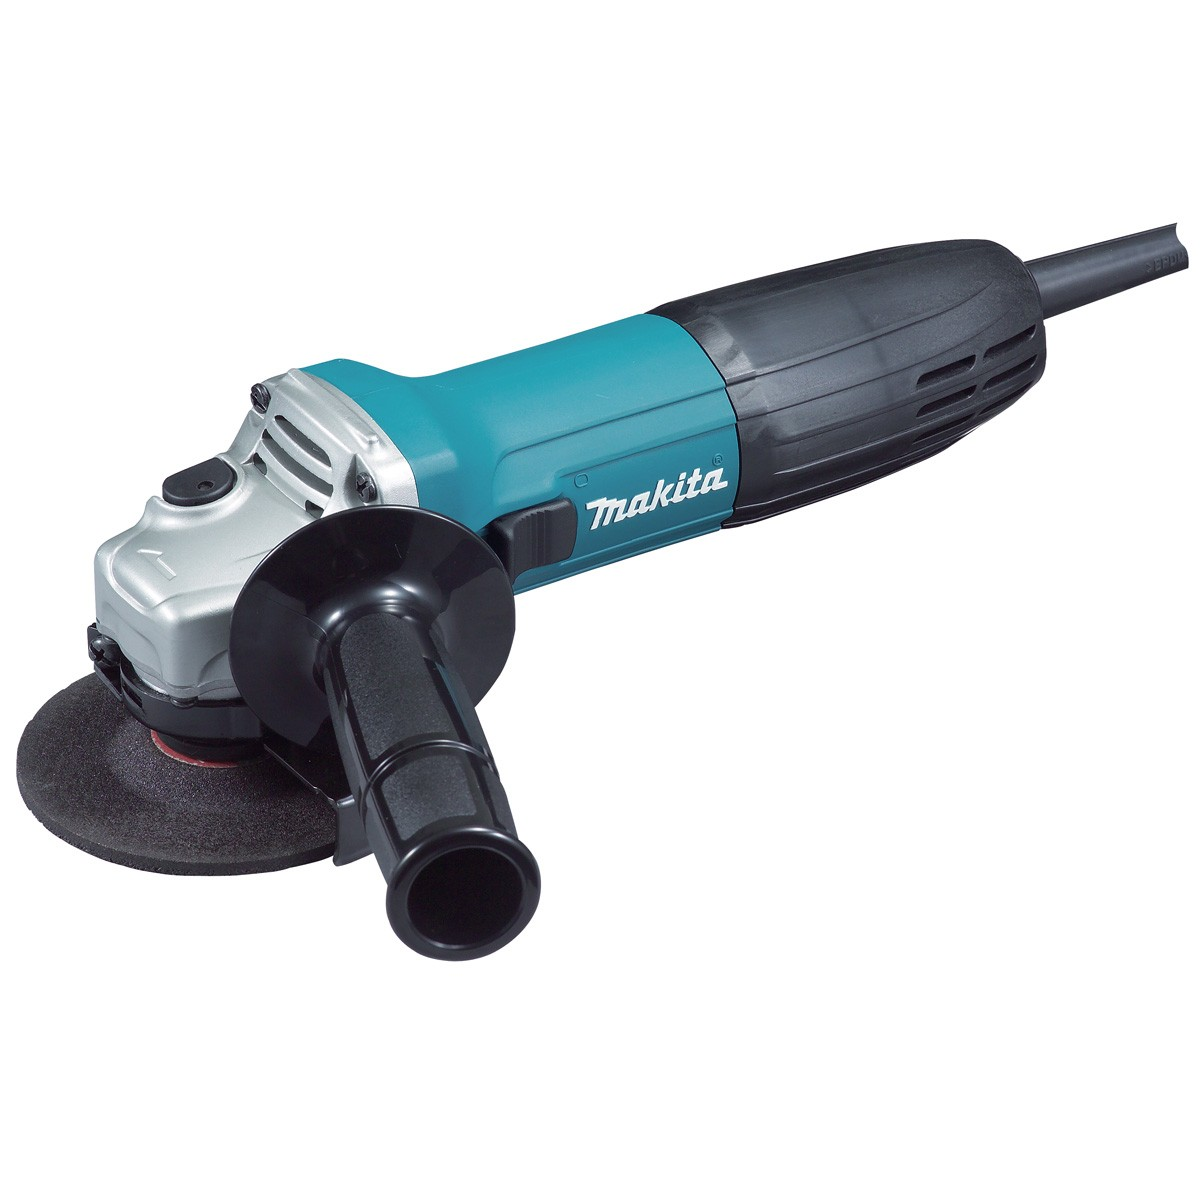 Makita GA4030 100mm Slim Design Angle Grinder 240v